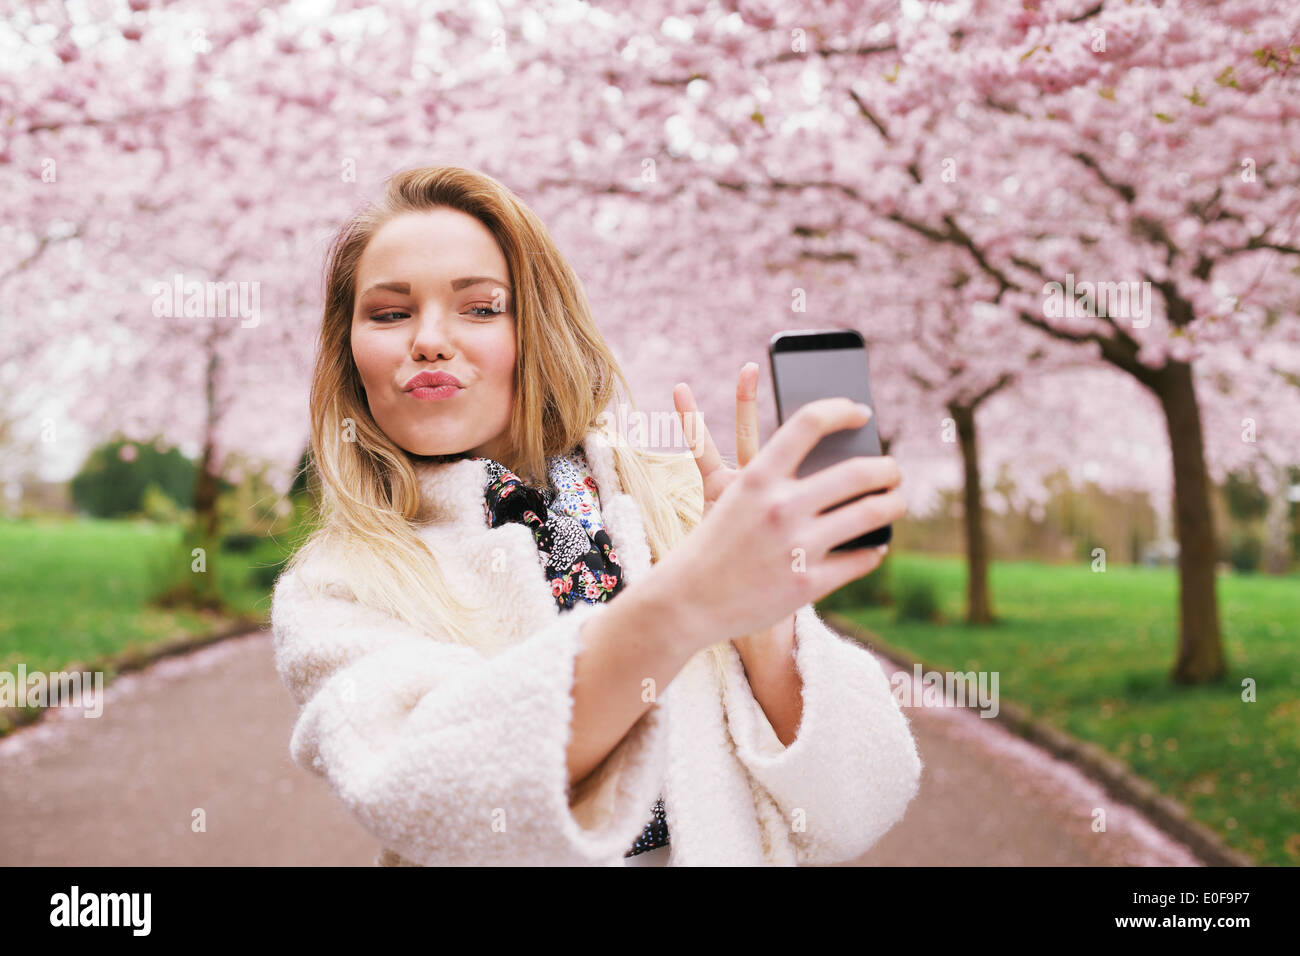 Cute young woman gesturing peace sign while taking her picture with mobile phone. Caucasian female model at spring blossom park - Stock Image